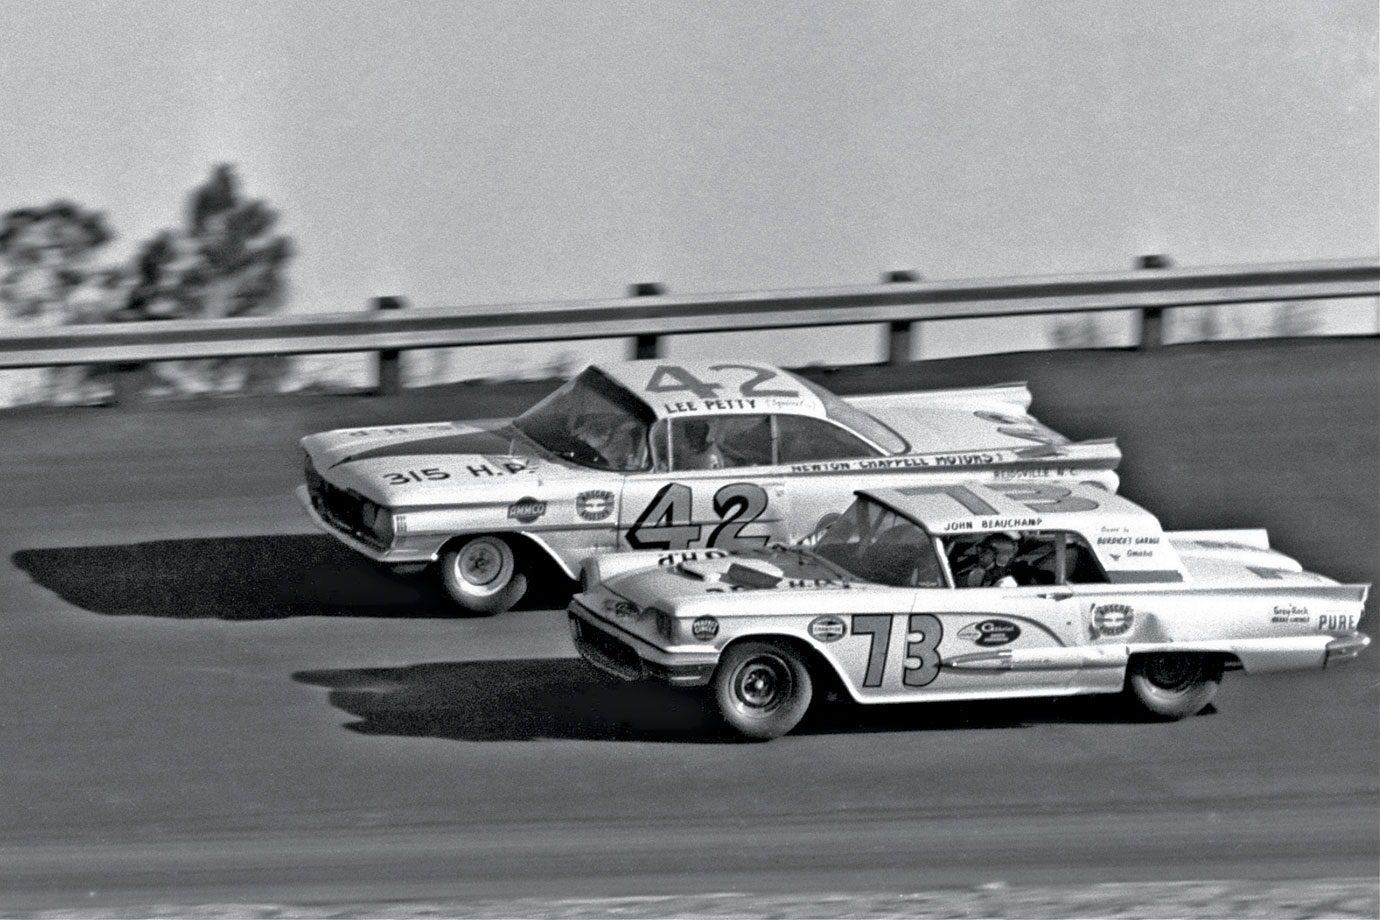 The first Daytona 500 set a high bar for drama. Lee Petty and Johnny Beauchamp battled to the finish line -- with the lapped Joe Weatherly above them -- in a race too close to call, although Beauchamp celebrated what he thought was a win. Days later, NASCAR officials discovered -- after viewing a still of just-developed news reel footage -- that Petty had actually nosed the finish line first and was declared the winner.